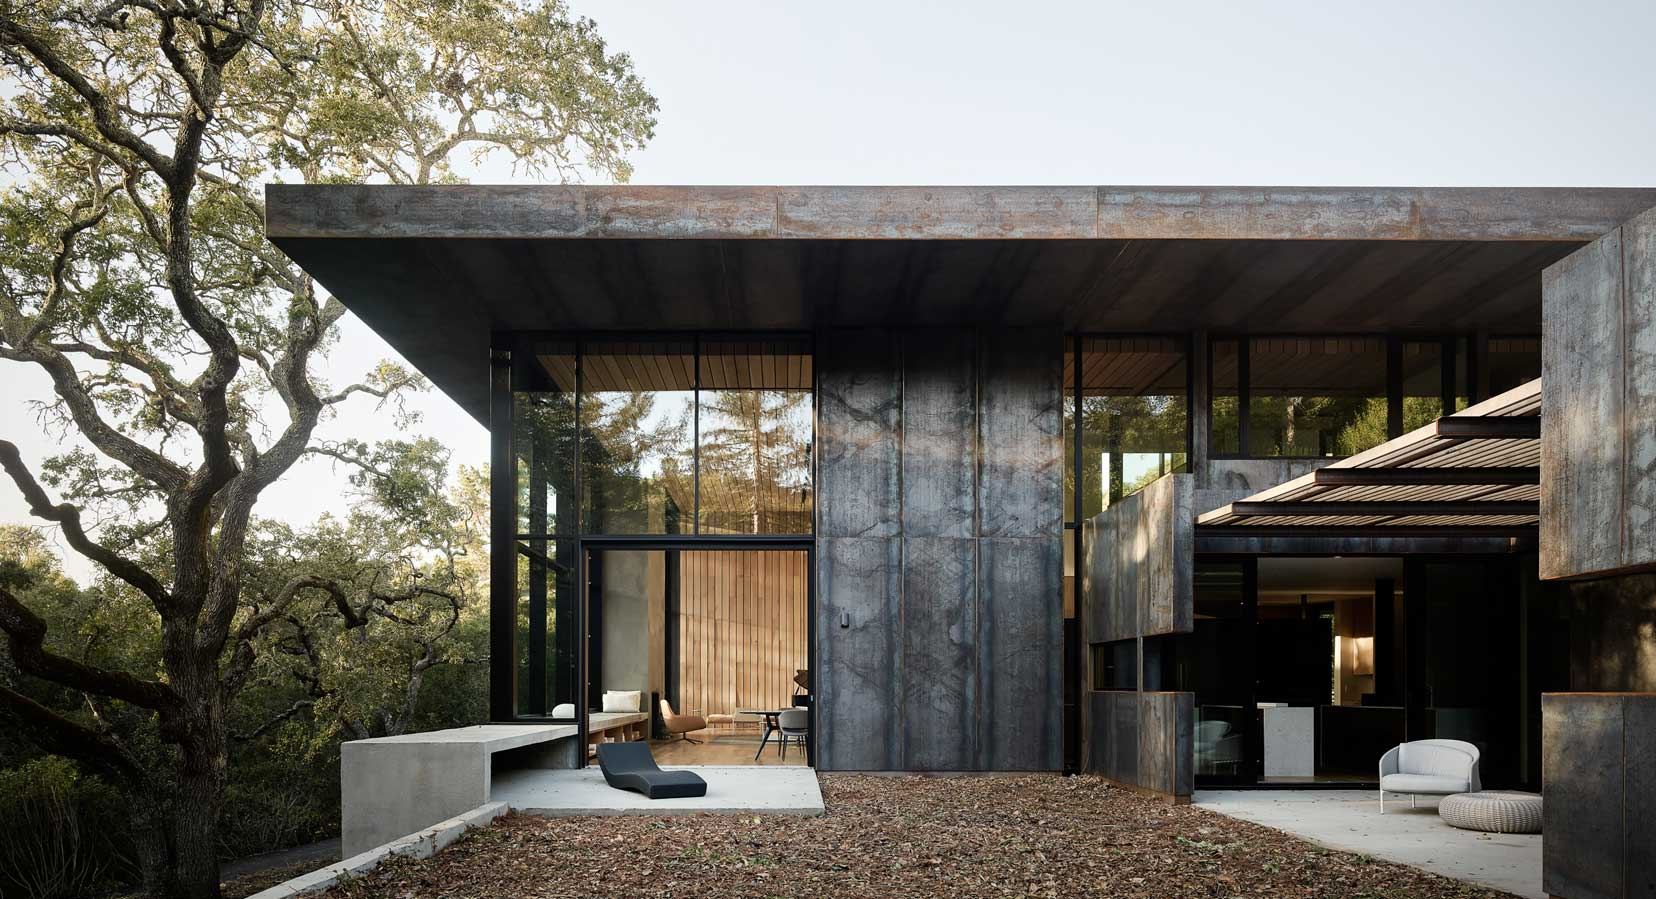 Miner Road's Weathering Steel Hides An Award-Winning Californian Luxury Home